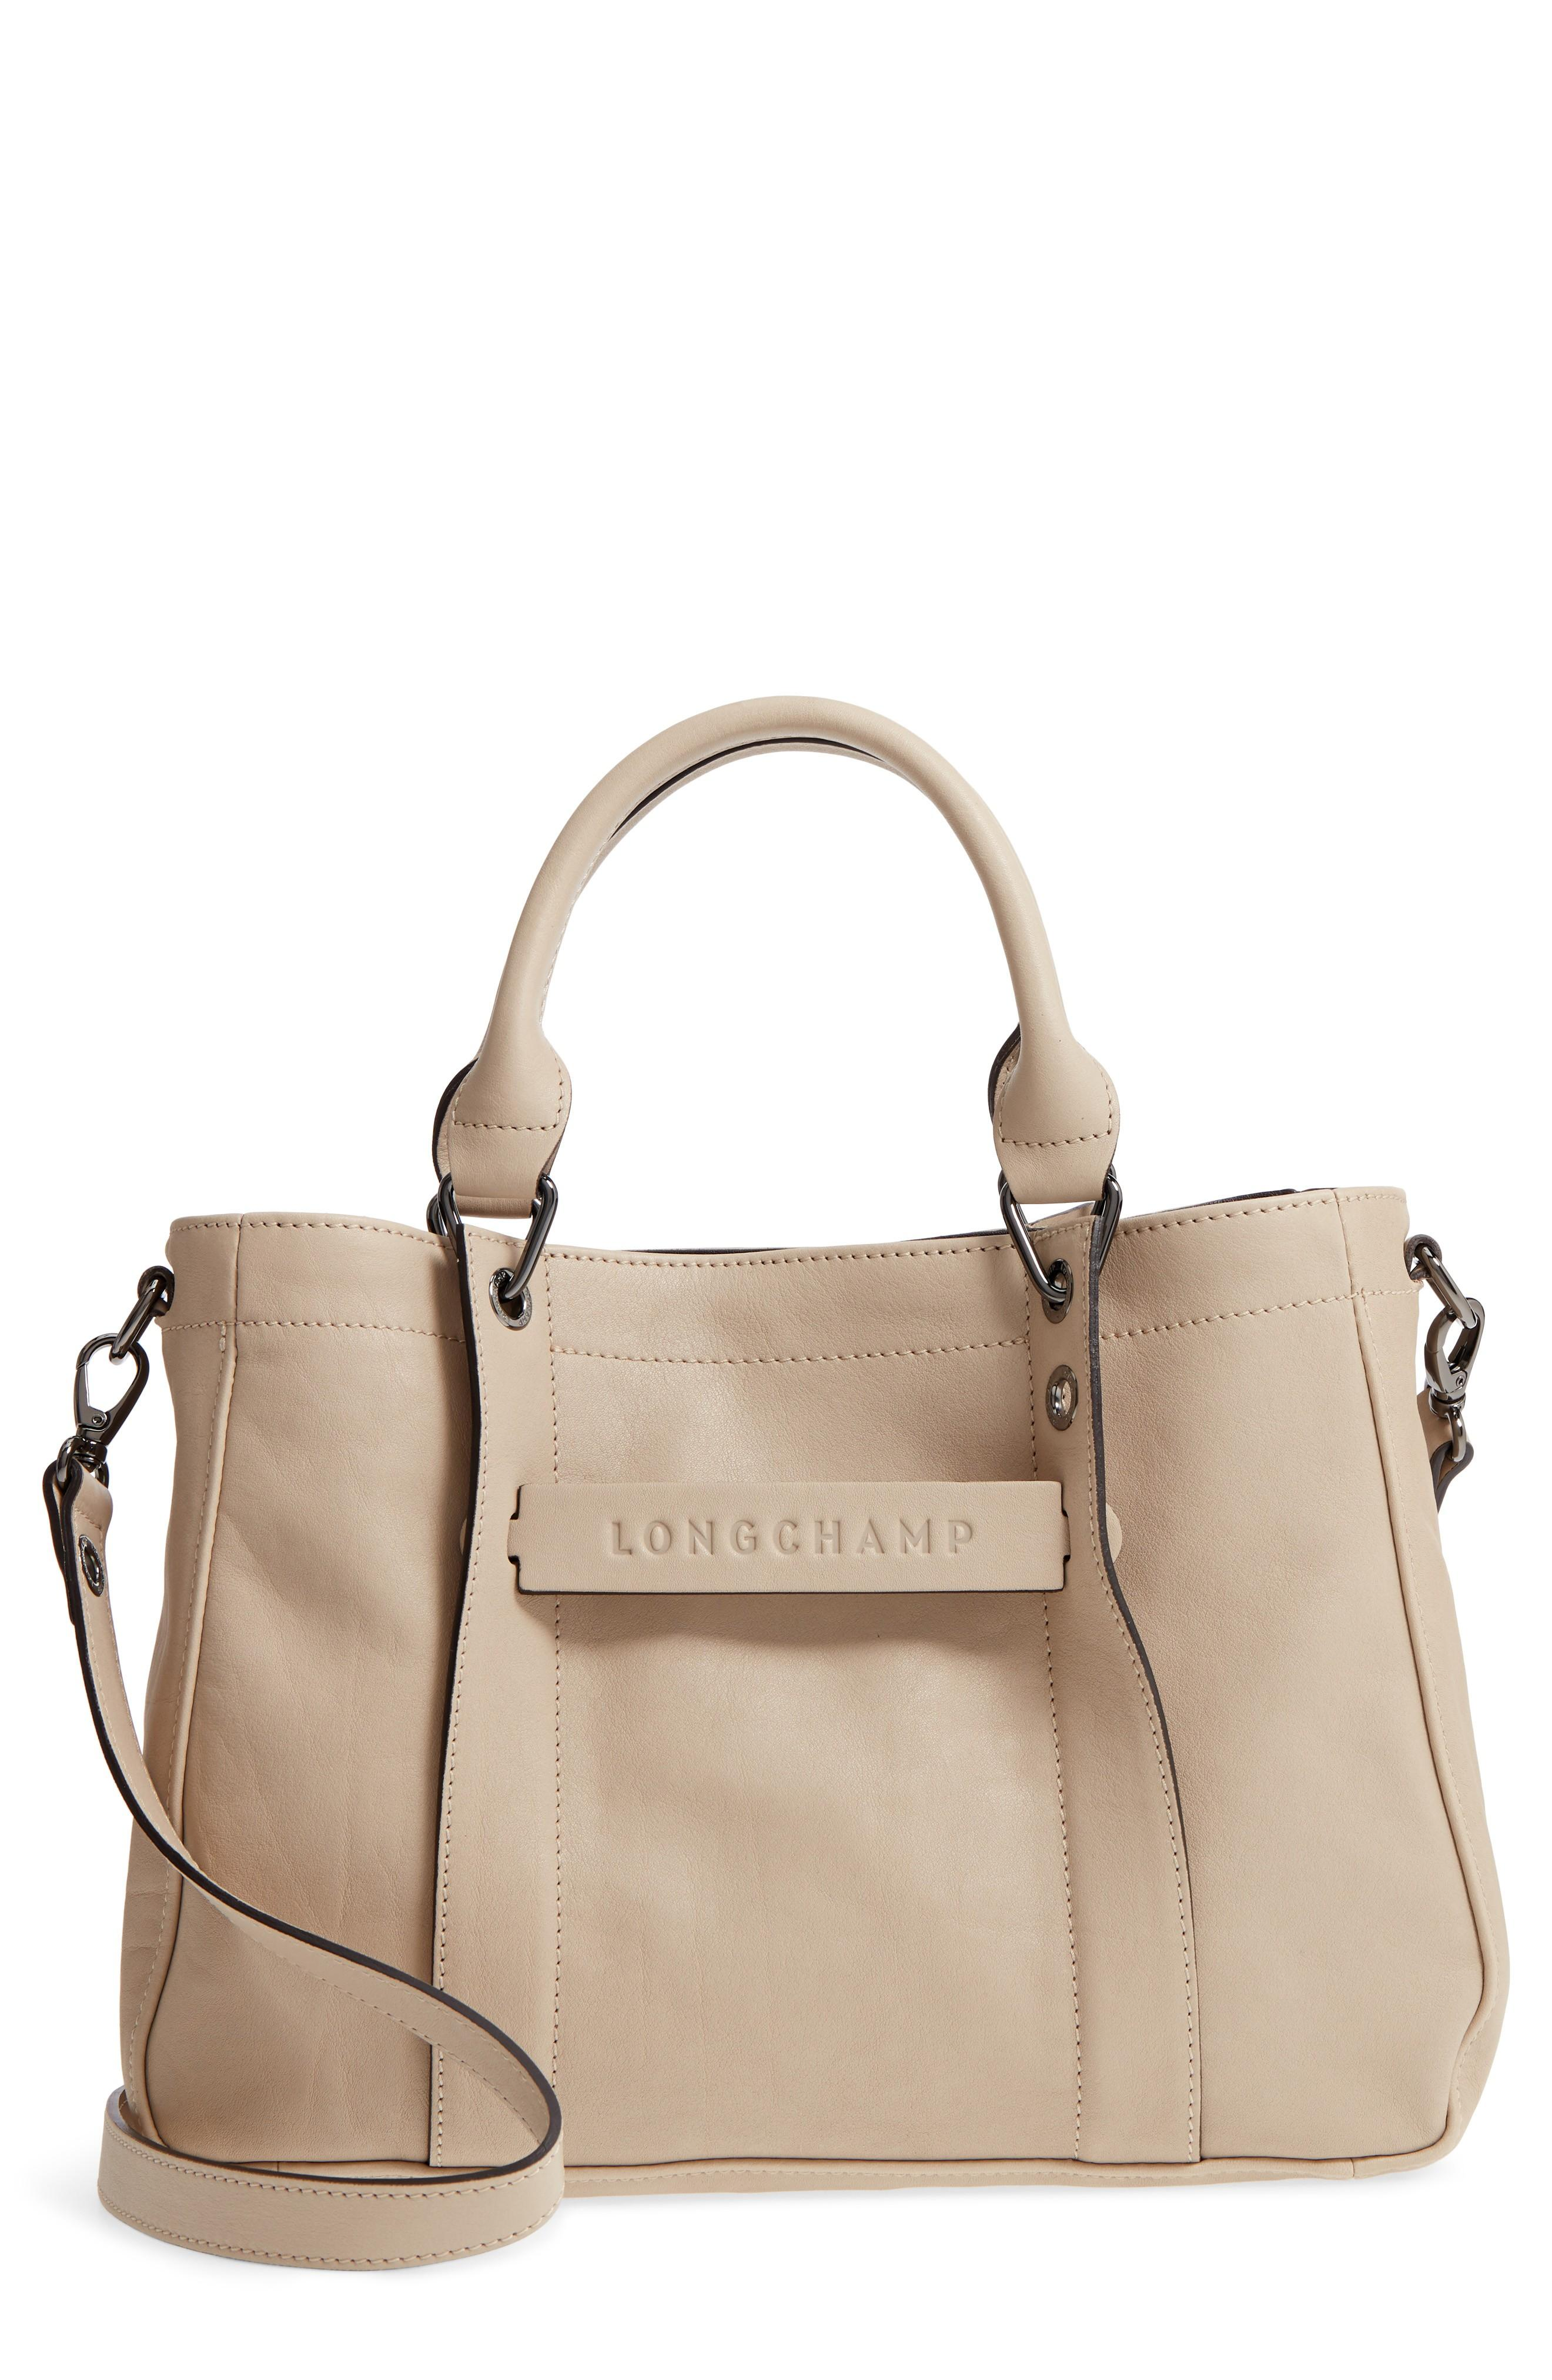 3850d7d63e3 Longchamp 'Small 3D' Leather Tote - Grey In Clay   ModeSens